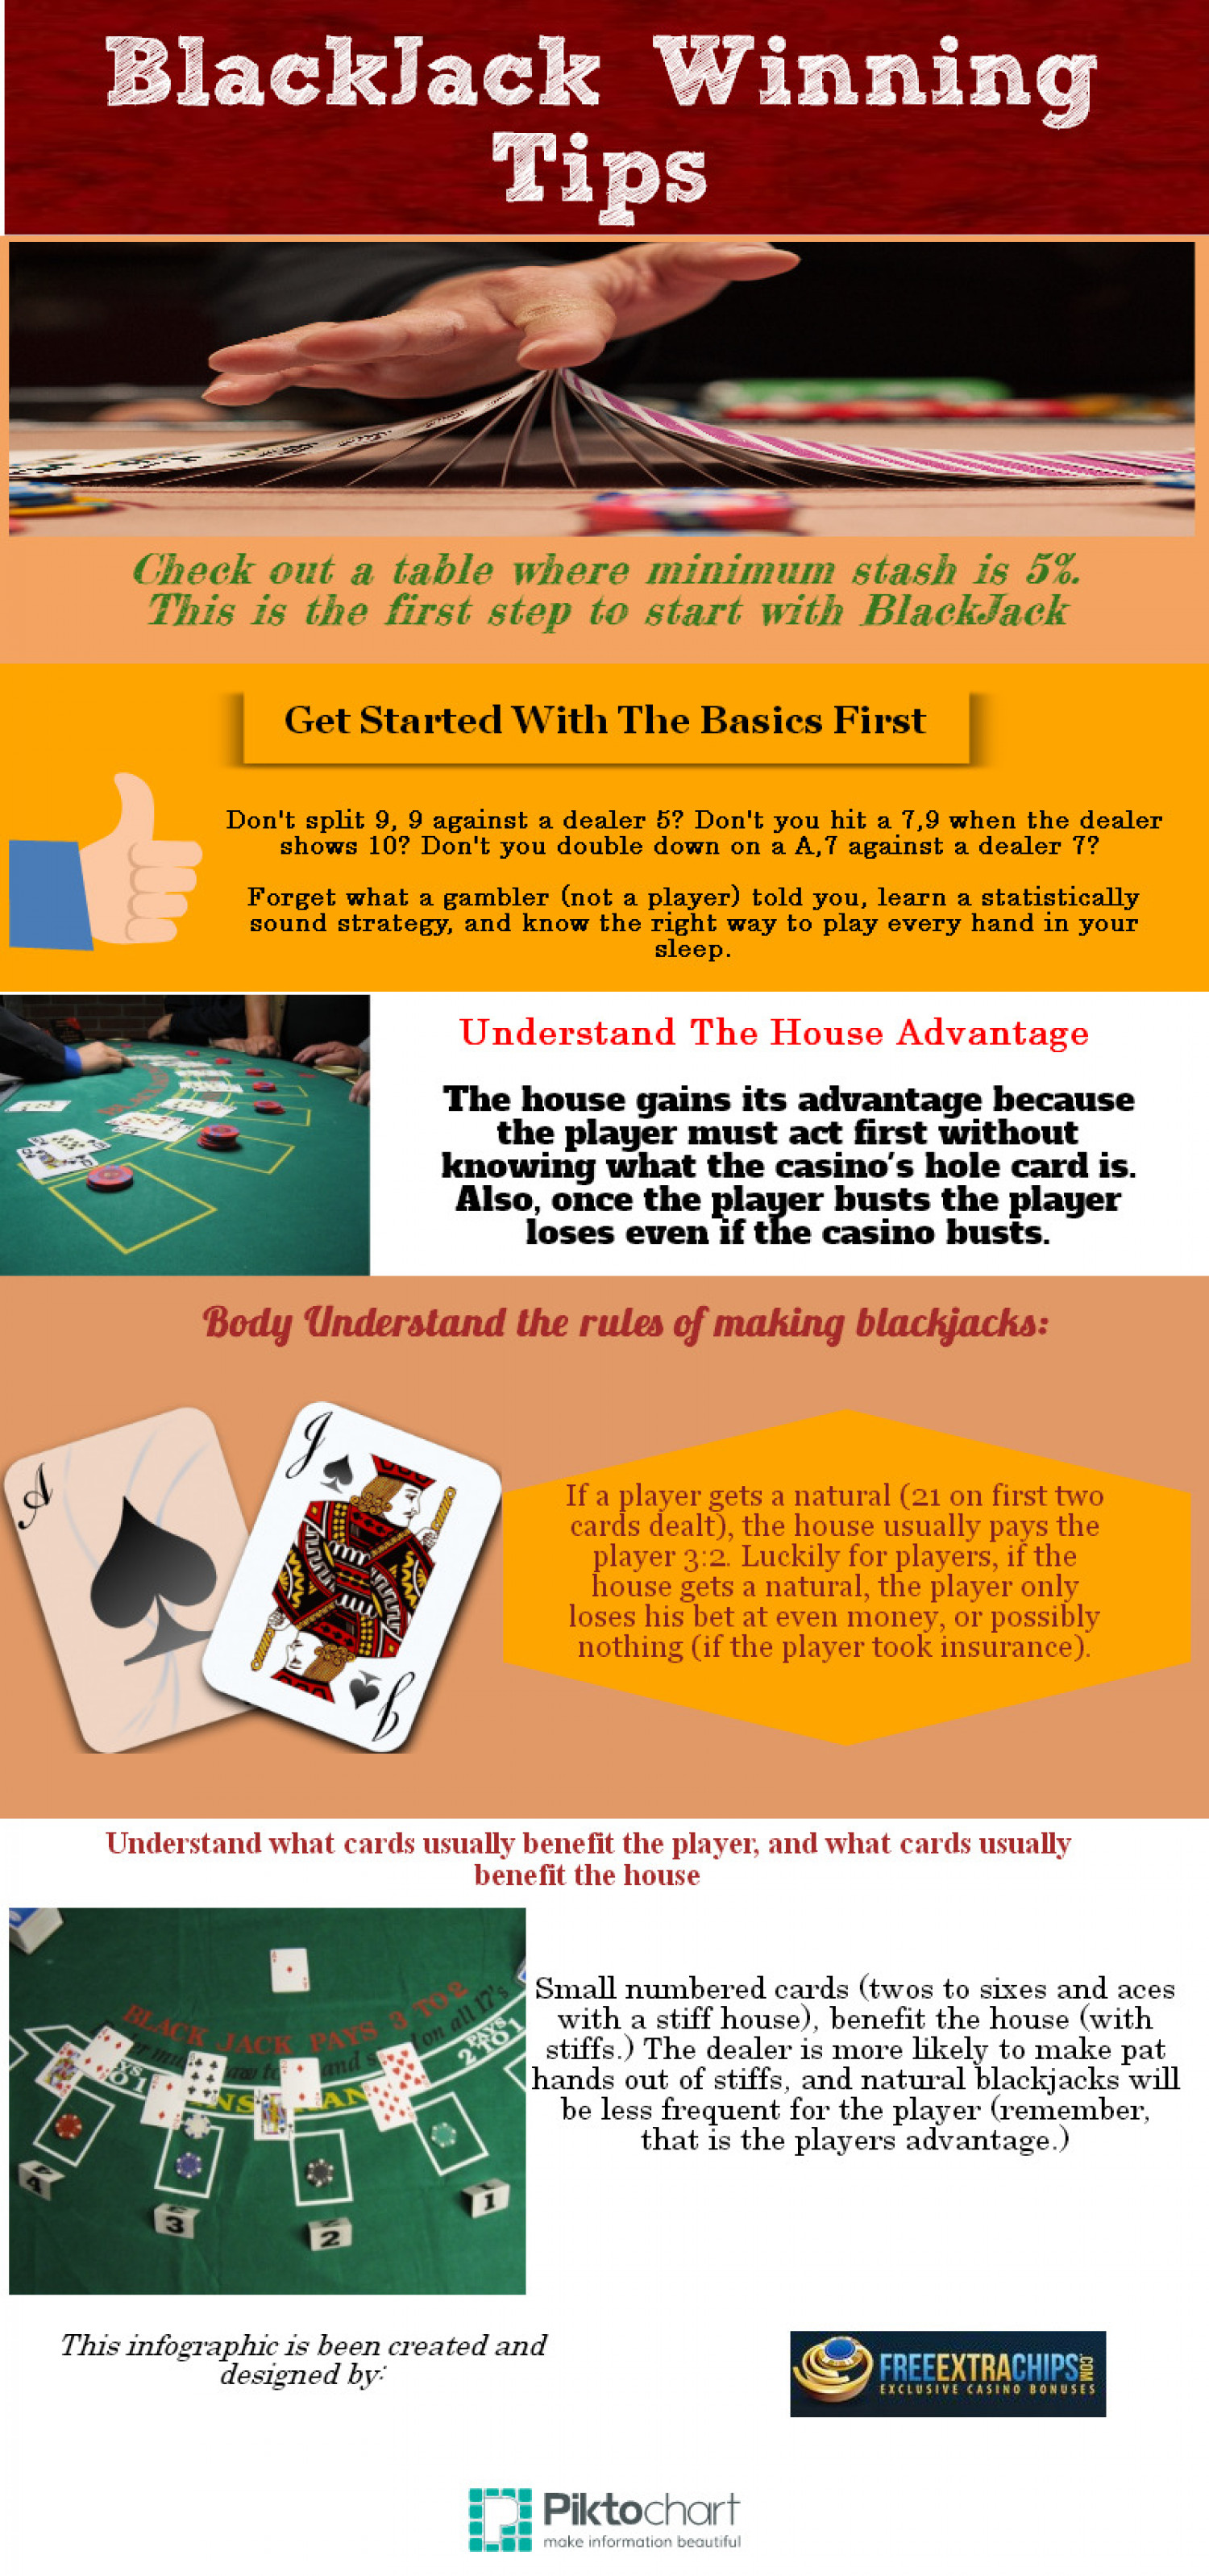 blackjack winning tips